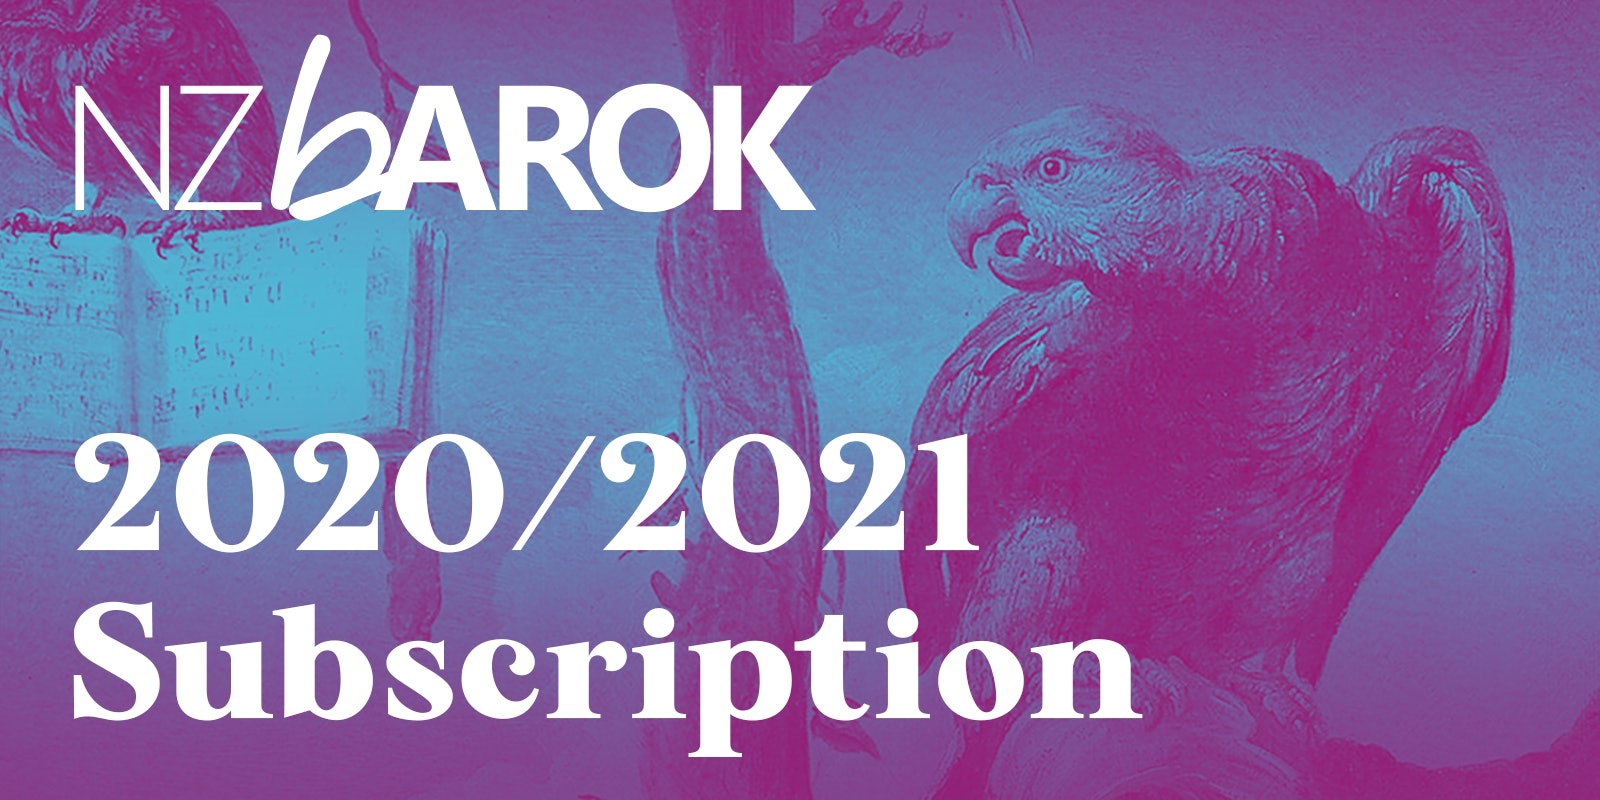 NZ Barok Subscription